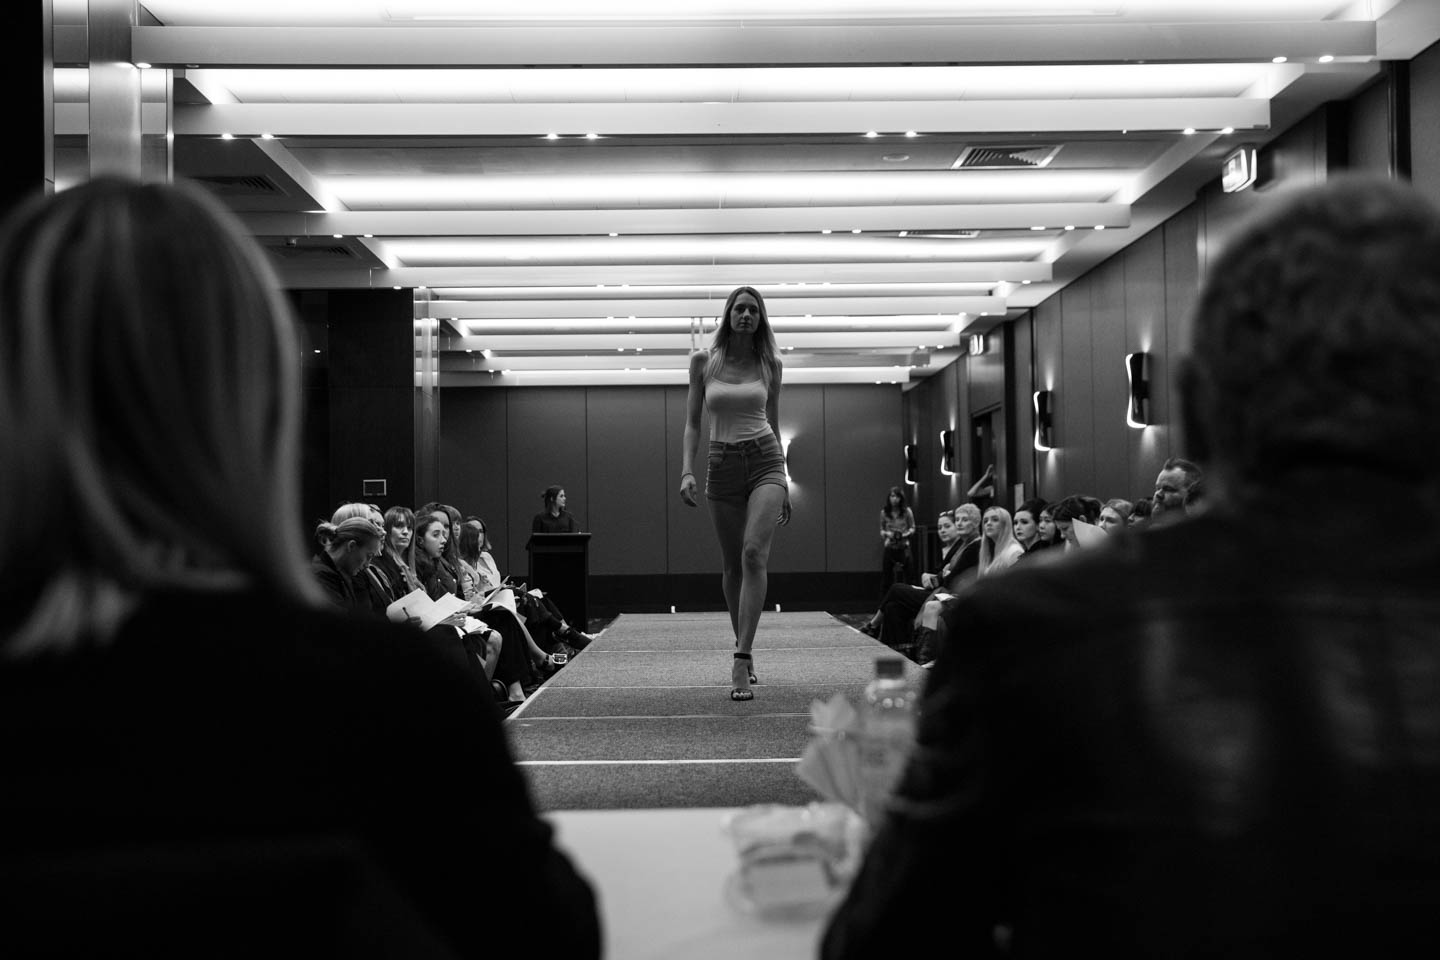 More than 150 models participated on a fashion casting in the hope of being selected to walk the runway of Telstra Perth Fashion Festival.